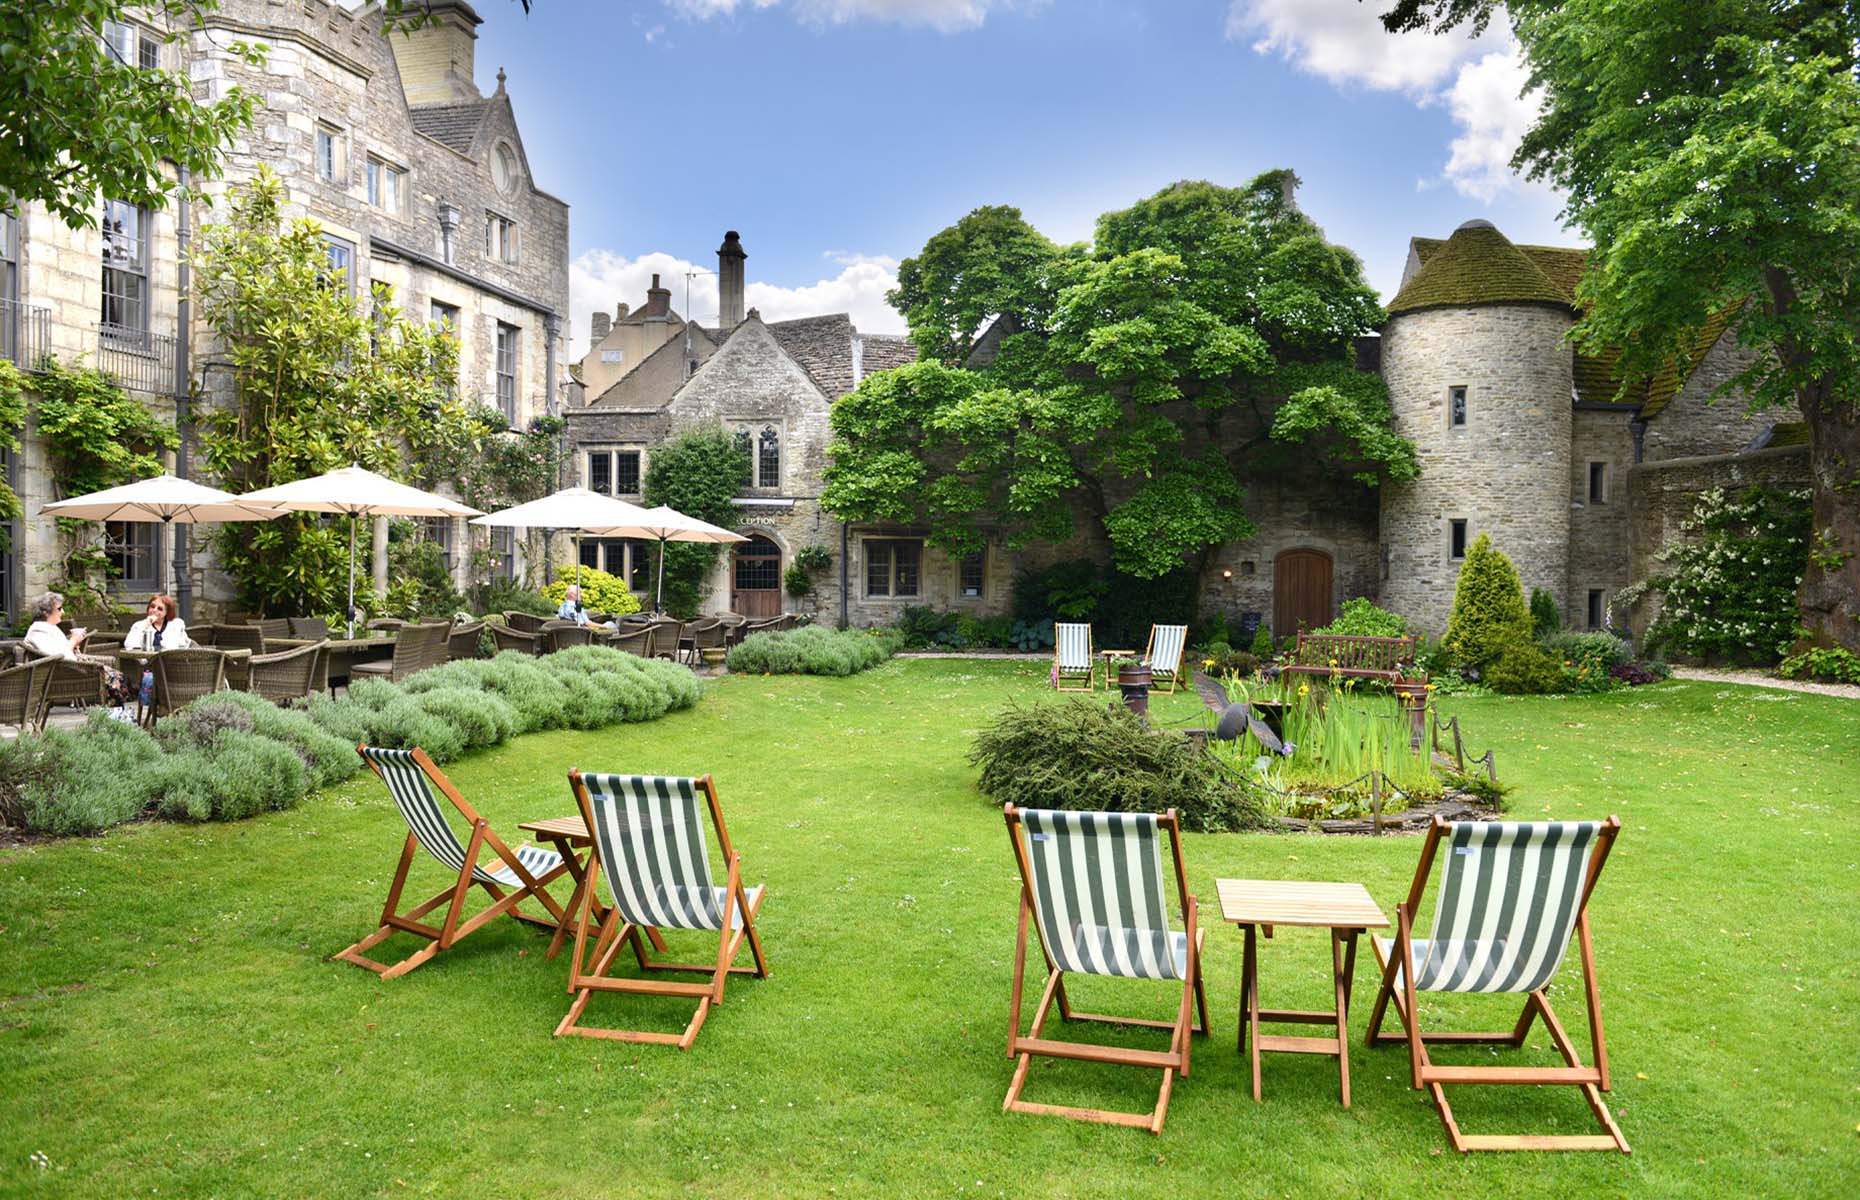 The Close hotel in the Cotswolds